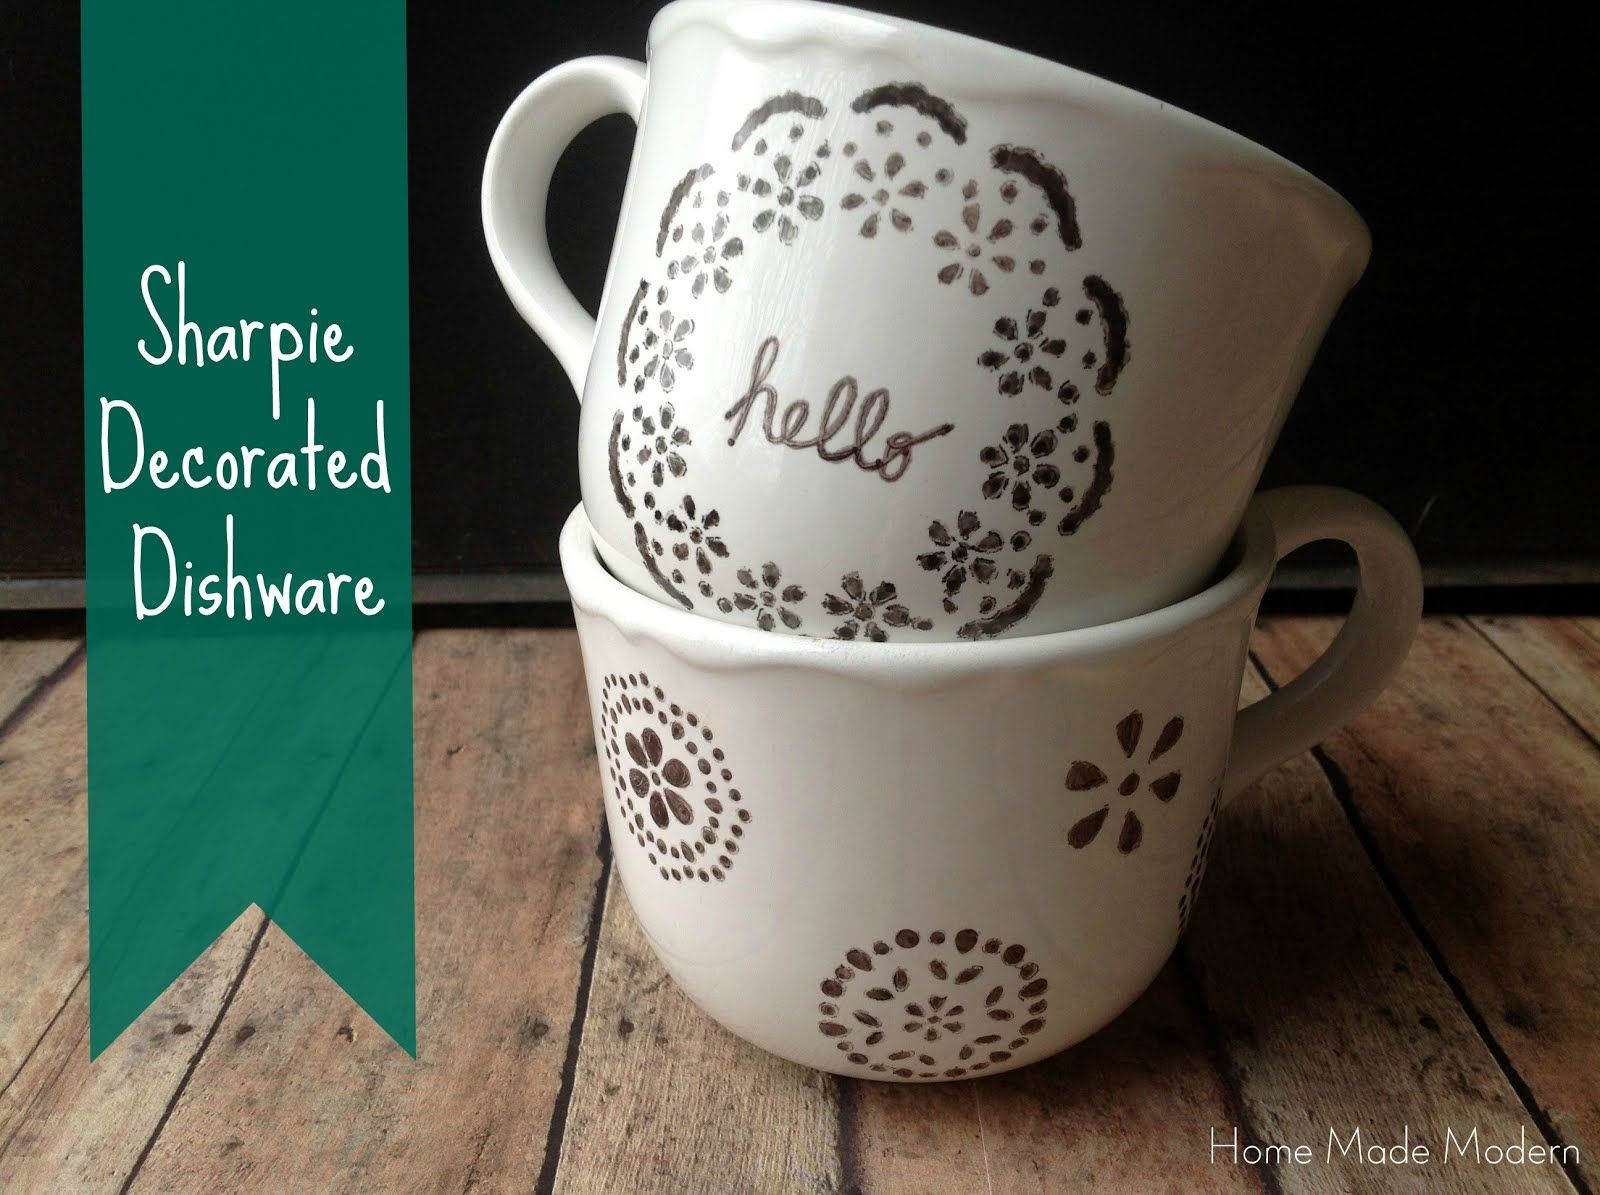 Craft ideas with sharpies - Copycat Craft Sharpie Decorated Dishware